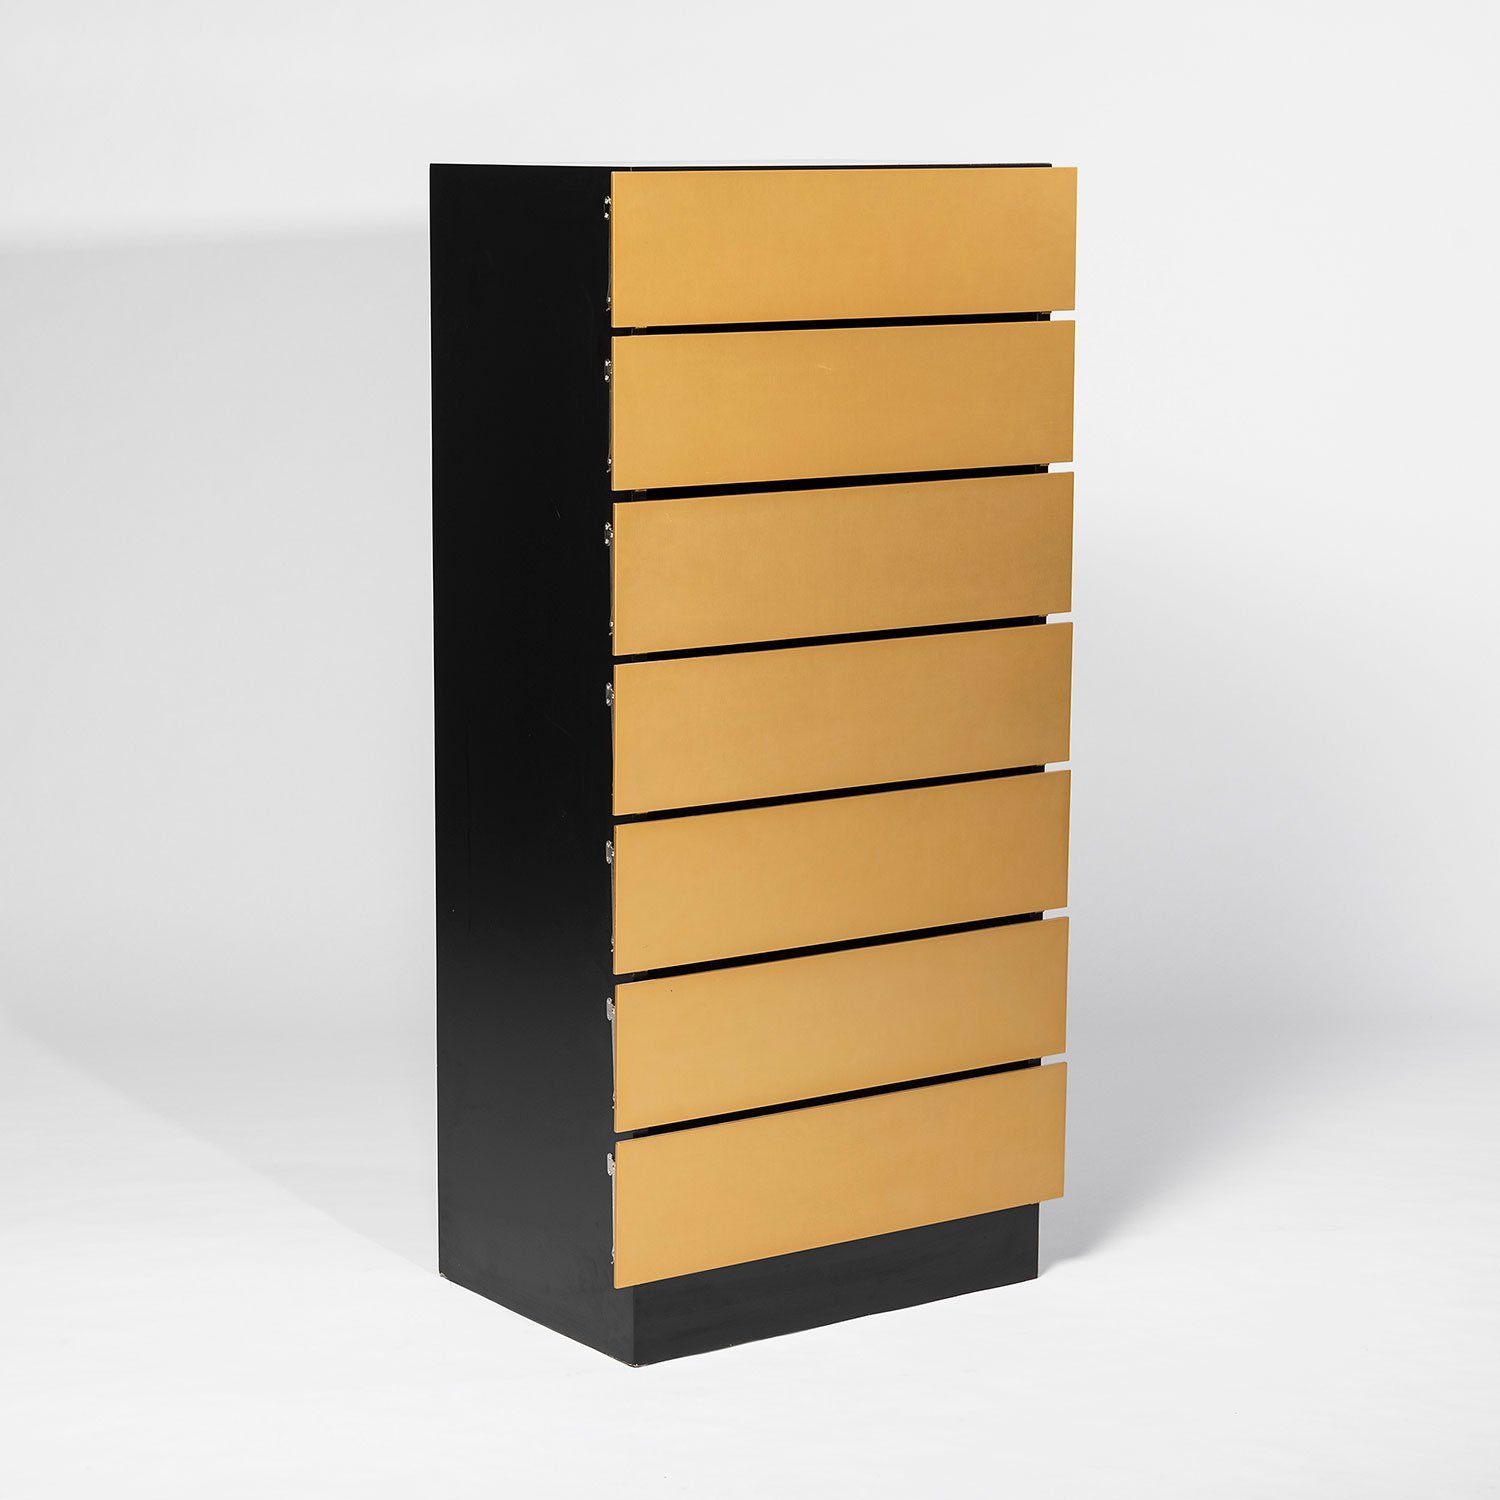 Johanna Grawunder |                                  Chest of drawers